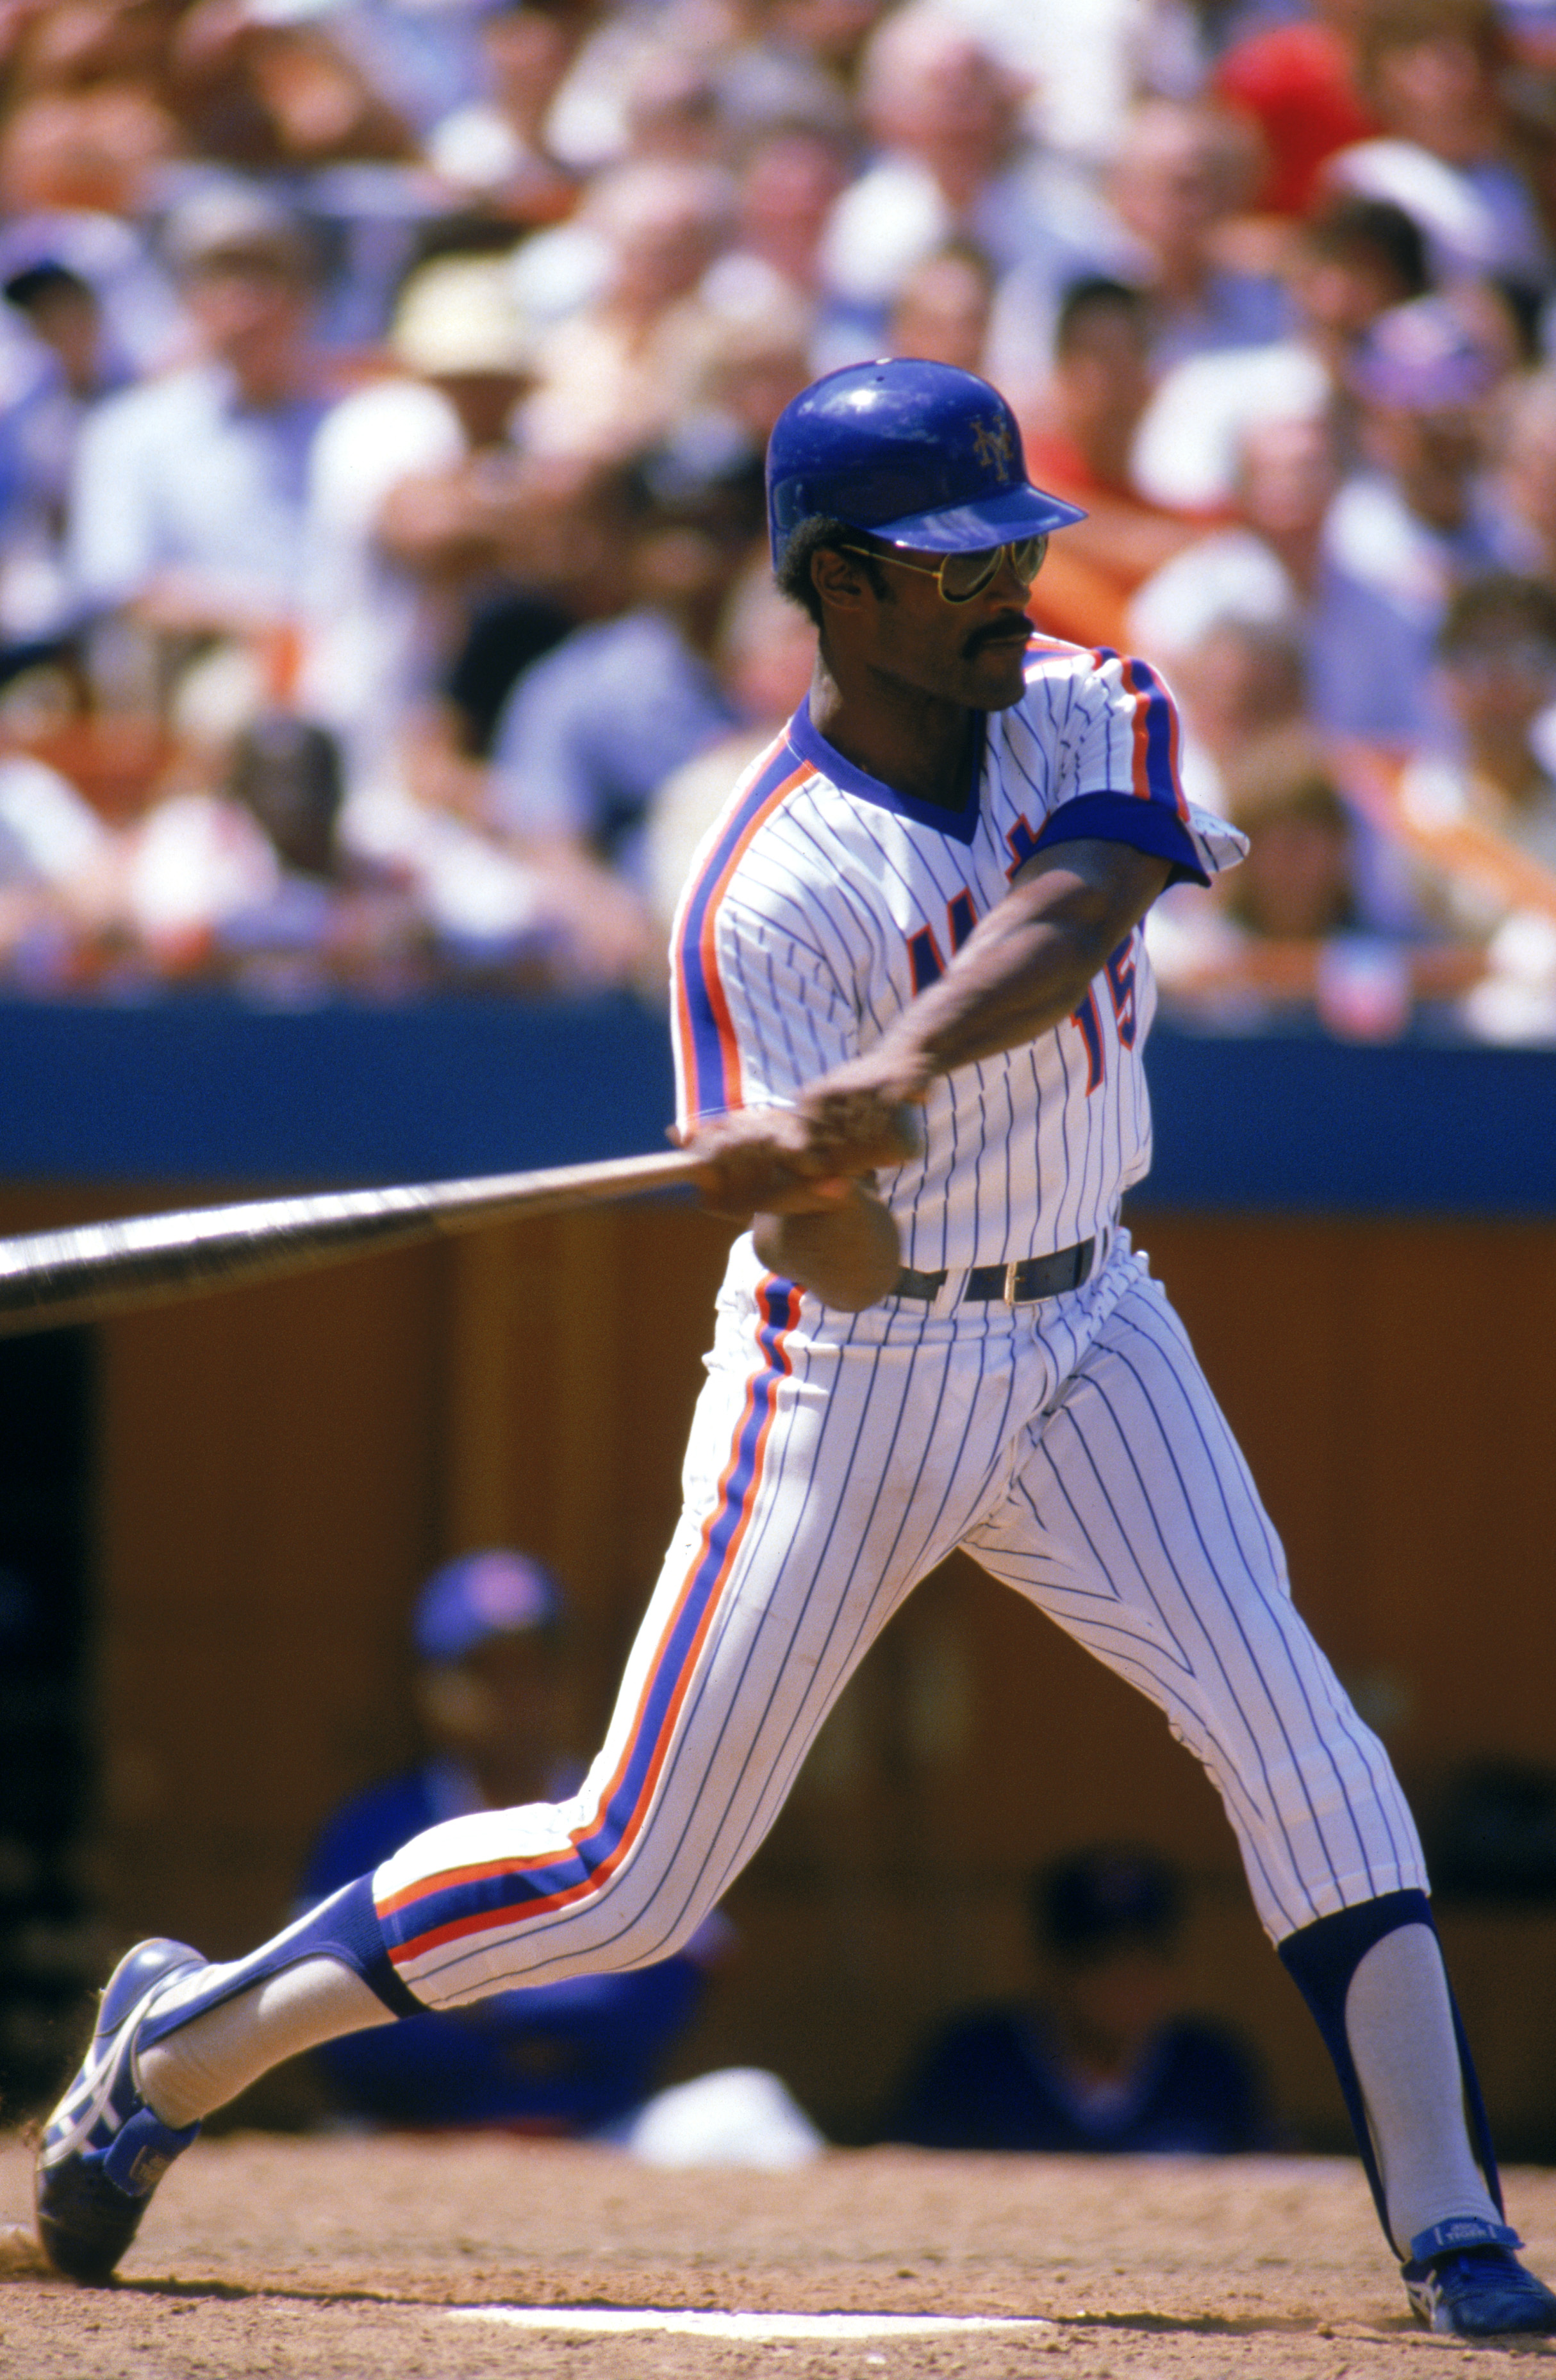 FLUSING, NY - 1985:  George Foster #15 of the New York Mets takes a swing during a game in 1985 at Shea Stadium in Flushing, New York.  (Photo by Rick Stewart/Getty Images)